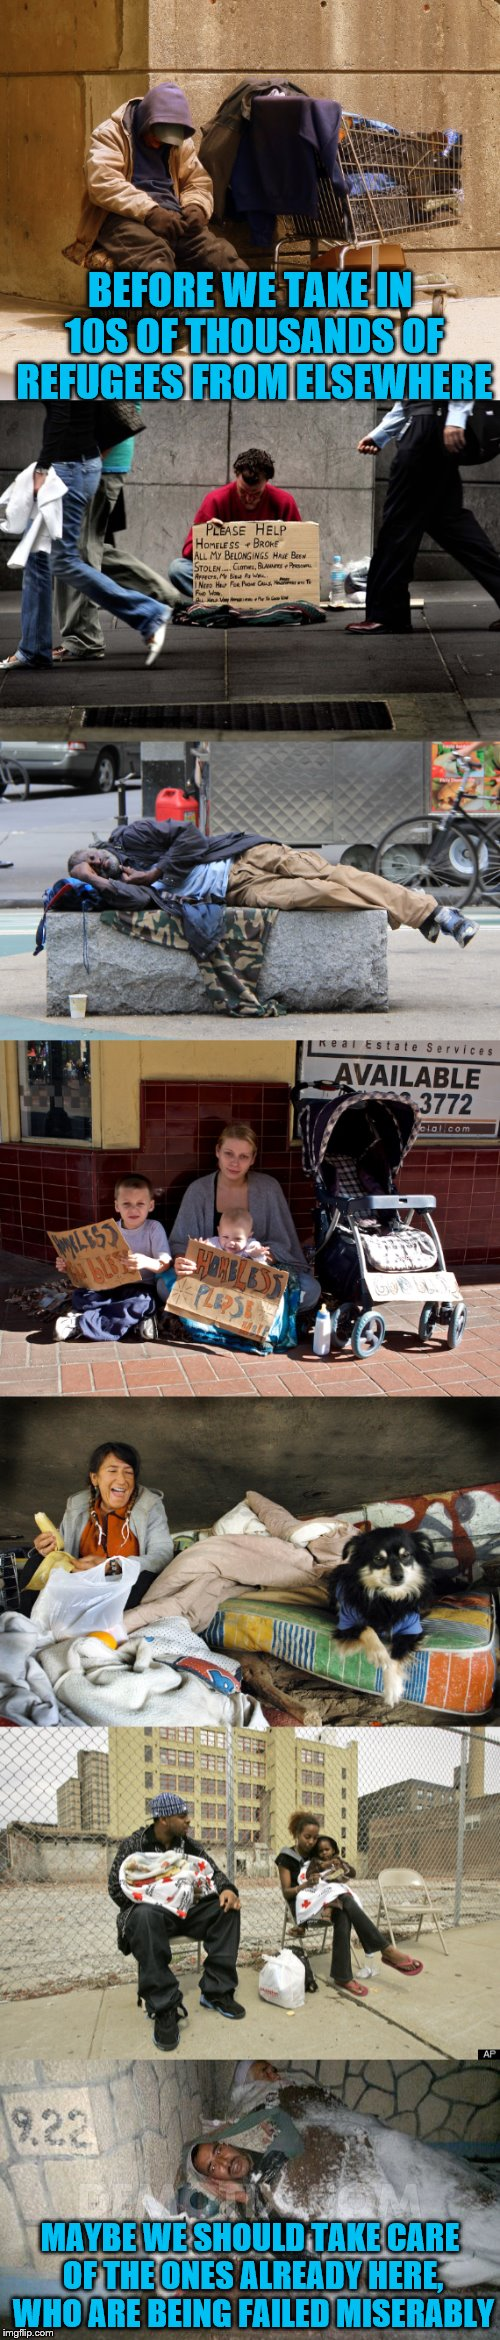 Many suffer from mental health issues and can never exist better than this on their own. Many are also veterans who served you.  | BEFORE WE TAKE IN 10S OF THOUSANDS OF REFUGEES FROM ELSEWHERE MAYBE WE SHOULD TAKE CARE OF THE ONES ALREADY HERE, WHO ARE BEING FAILED MISER | image tagged in memes,seriously,homeless,do they not count if they don't vote | made w/ Imgflip meme maker